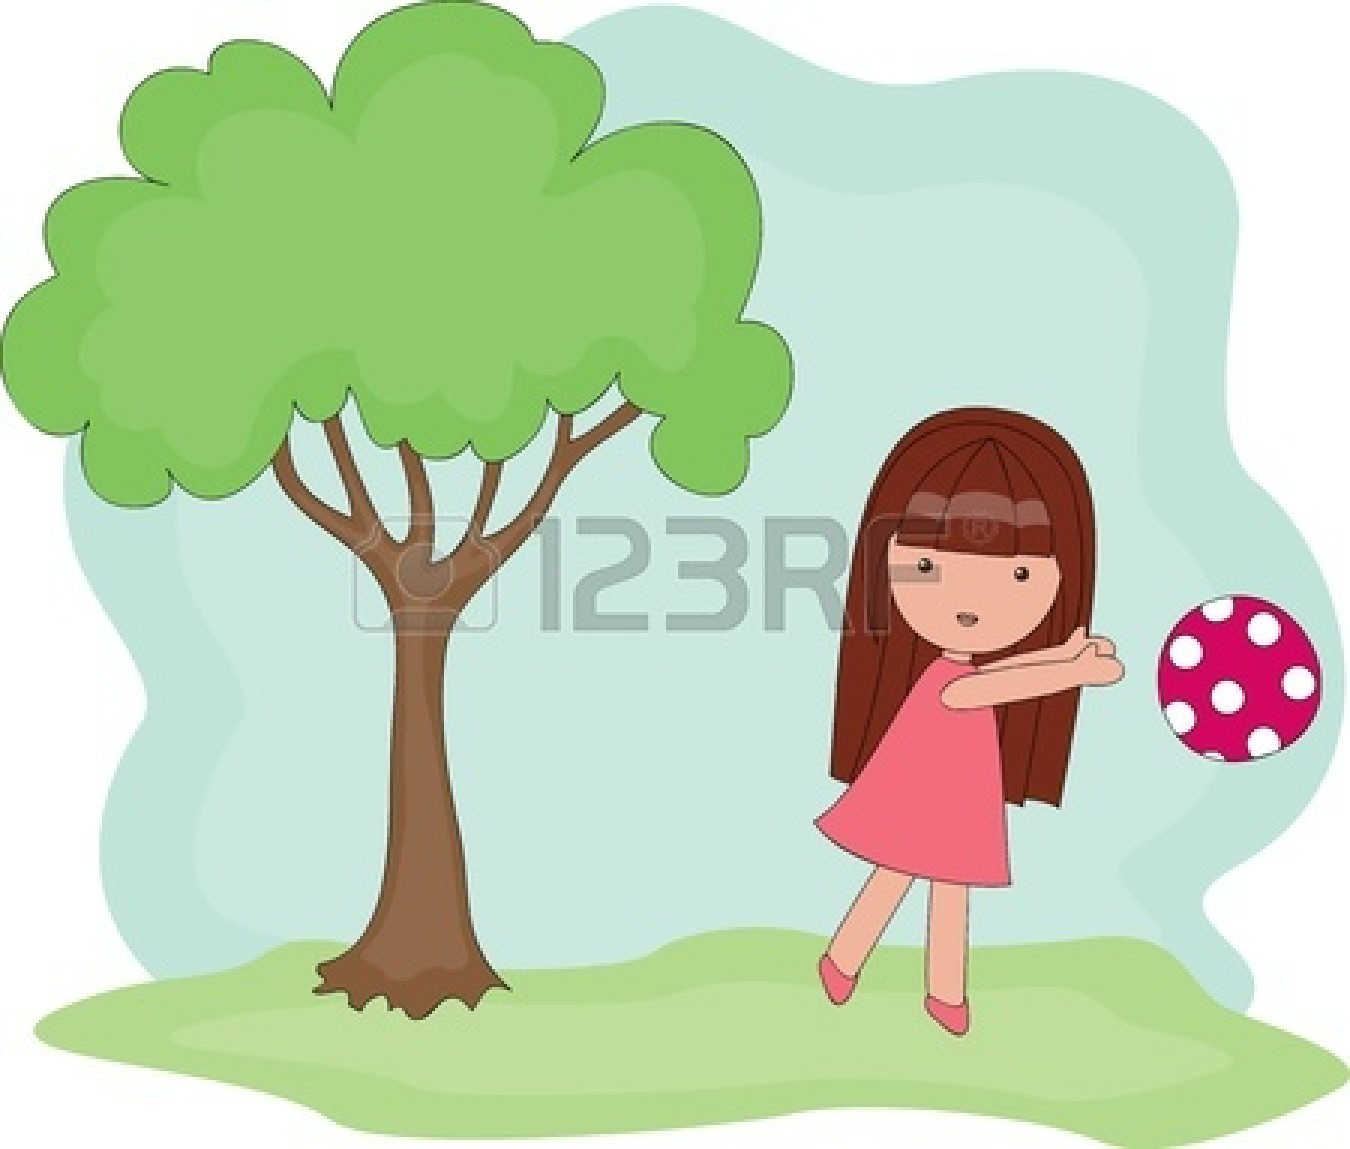 Outside Playground Clipart | Clipart Panda - Free Clipart ...